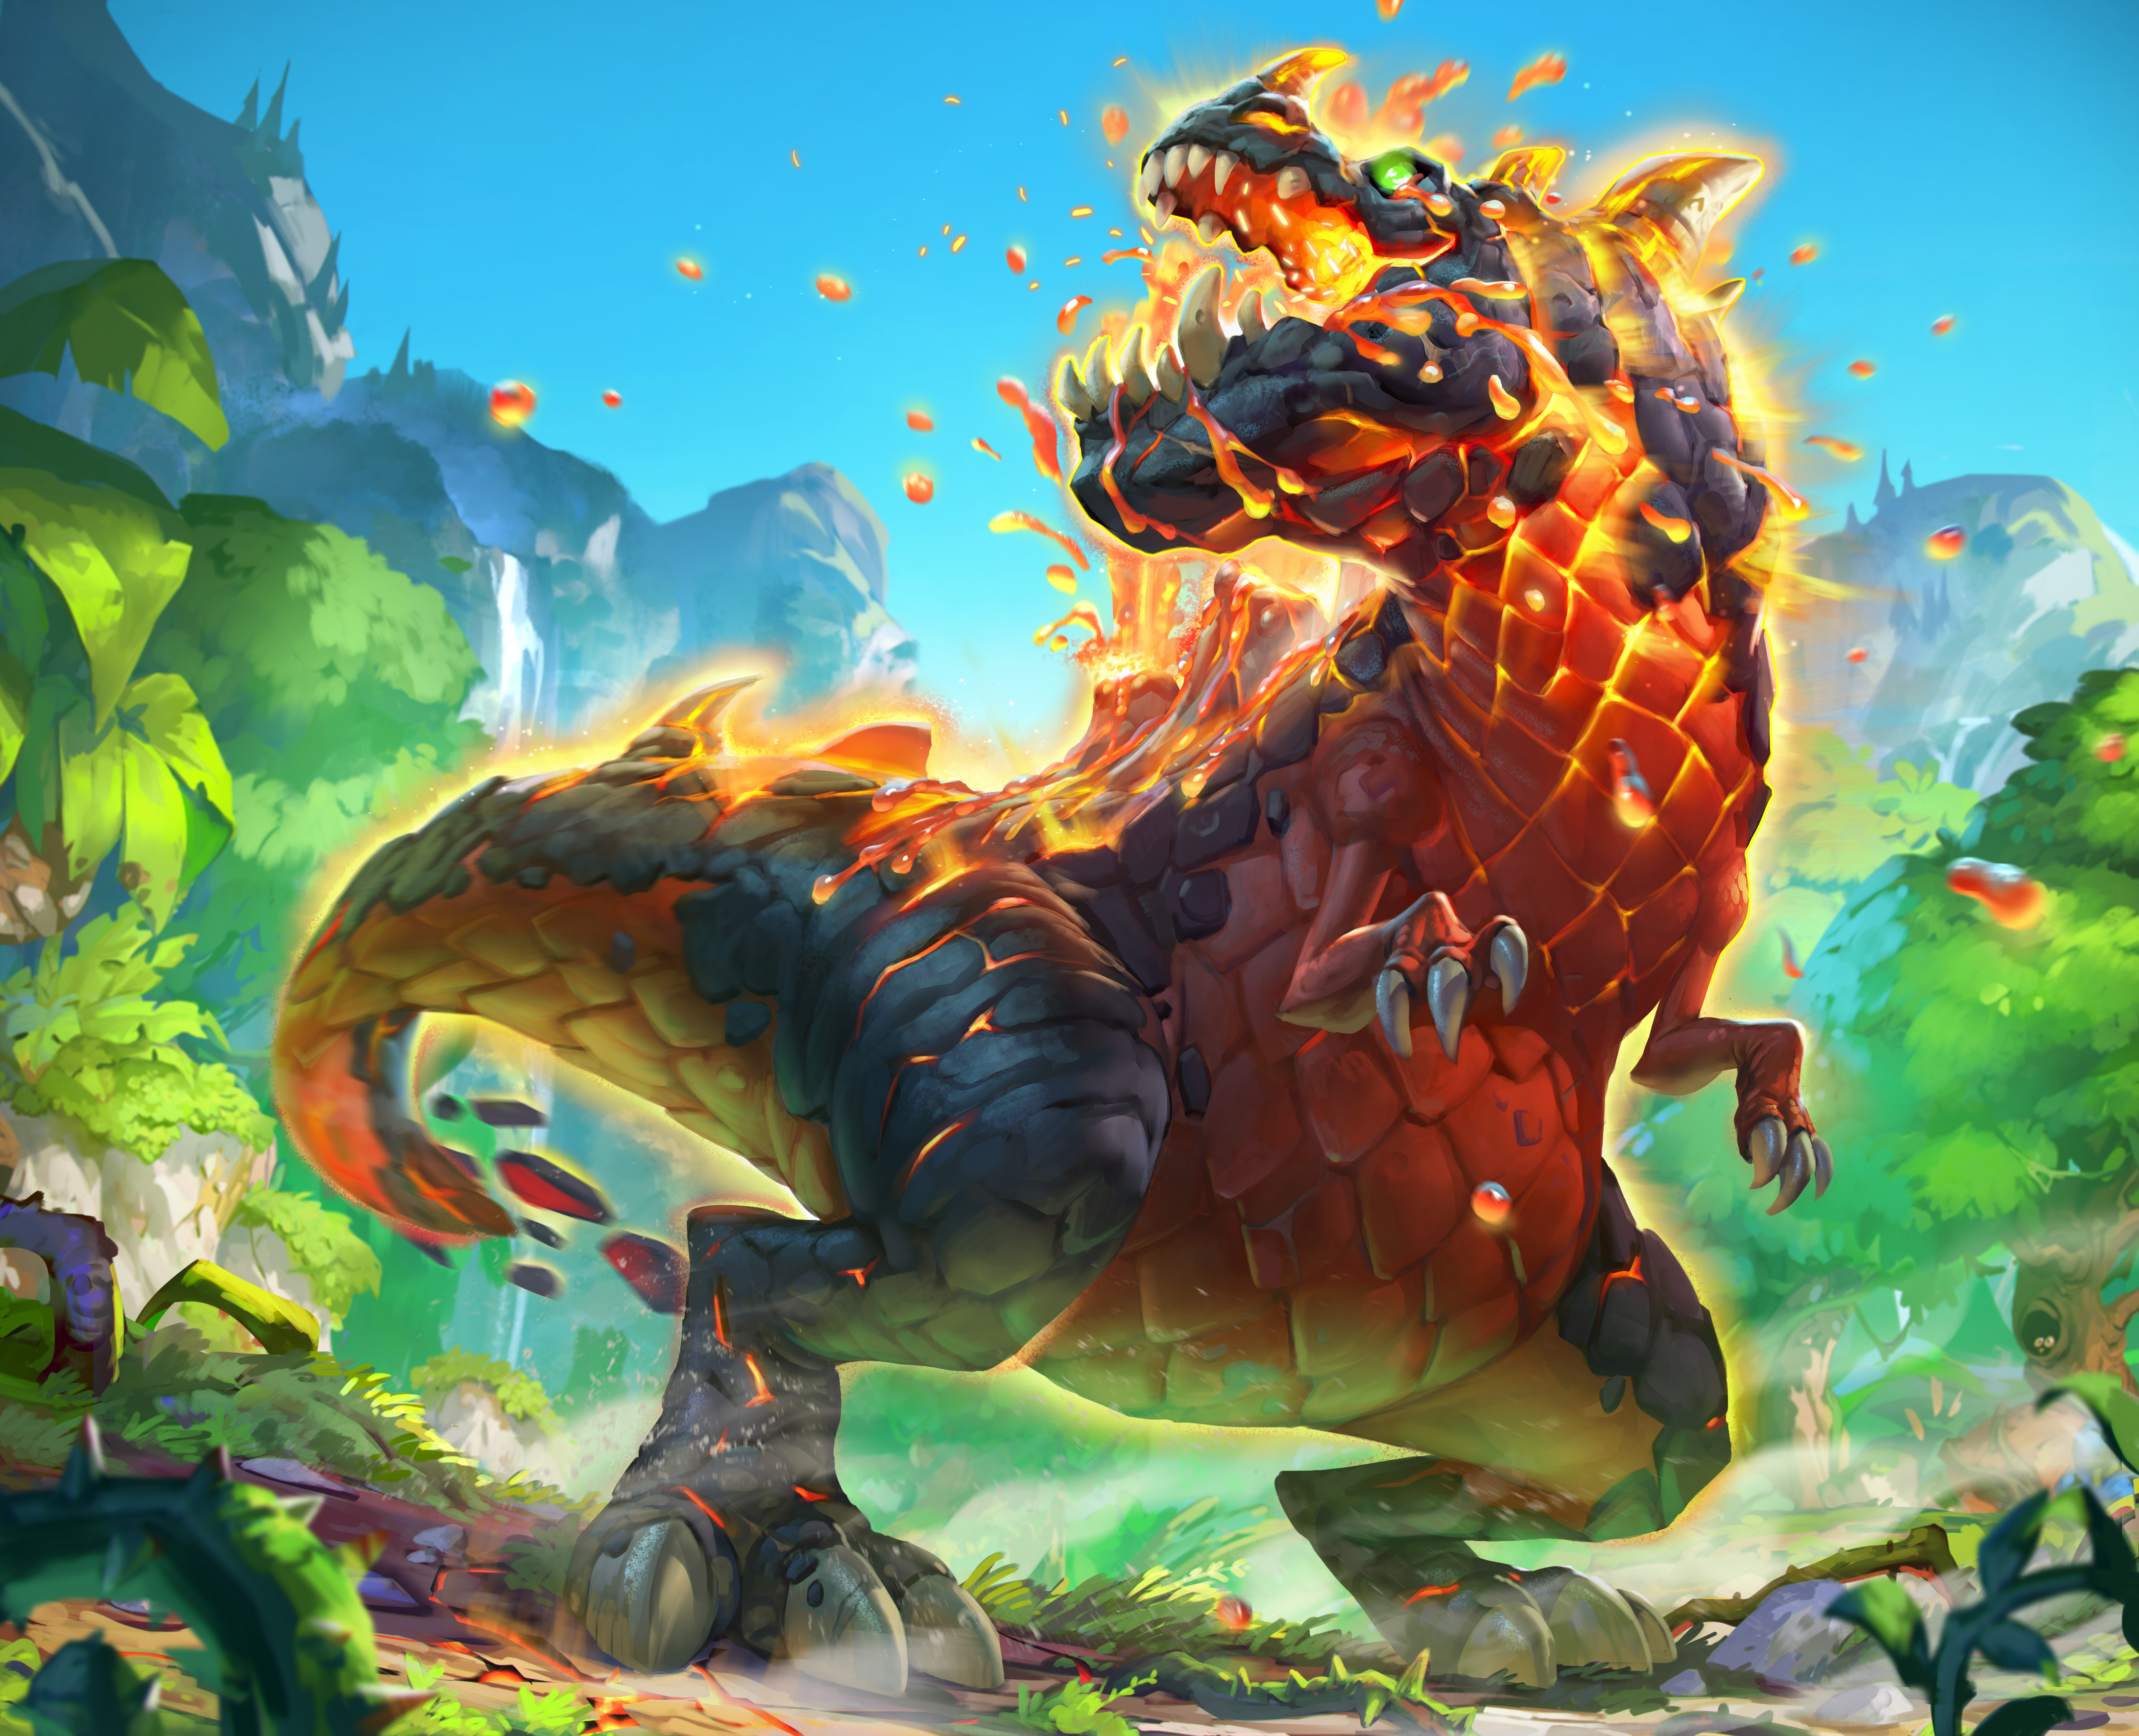 Jungle Wallpaper World Of Warcraft: Hearthstone: Heroes Of Warcraft Backgrounds, Pictures, Images